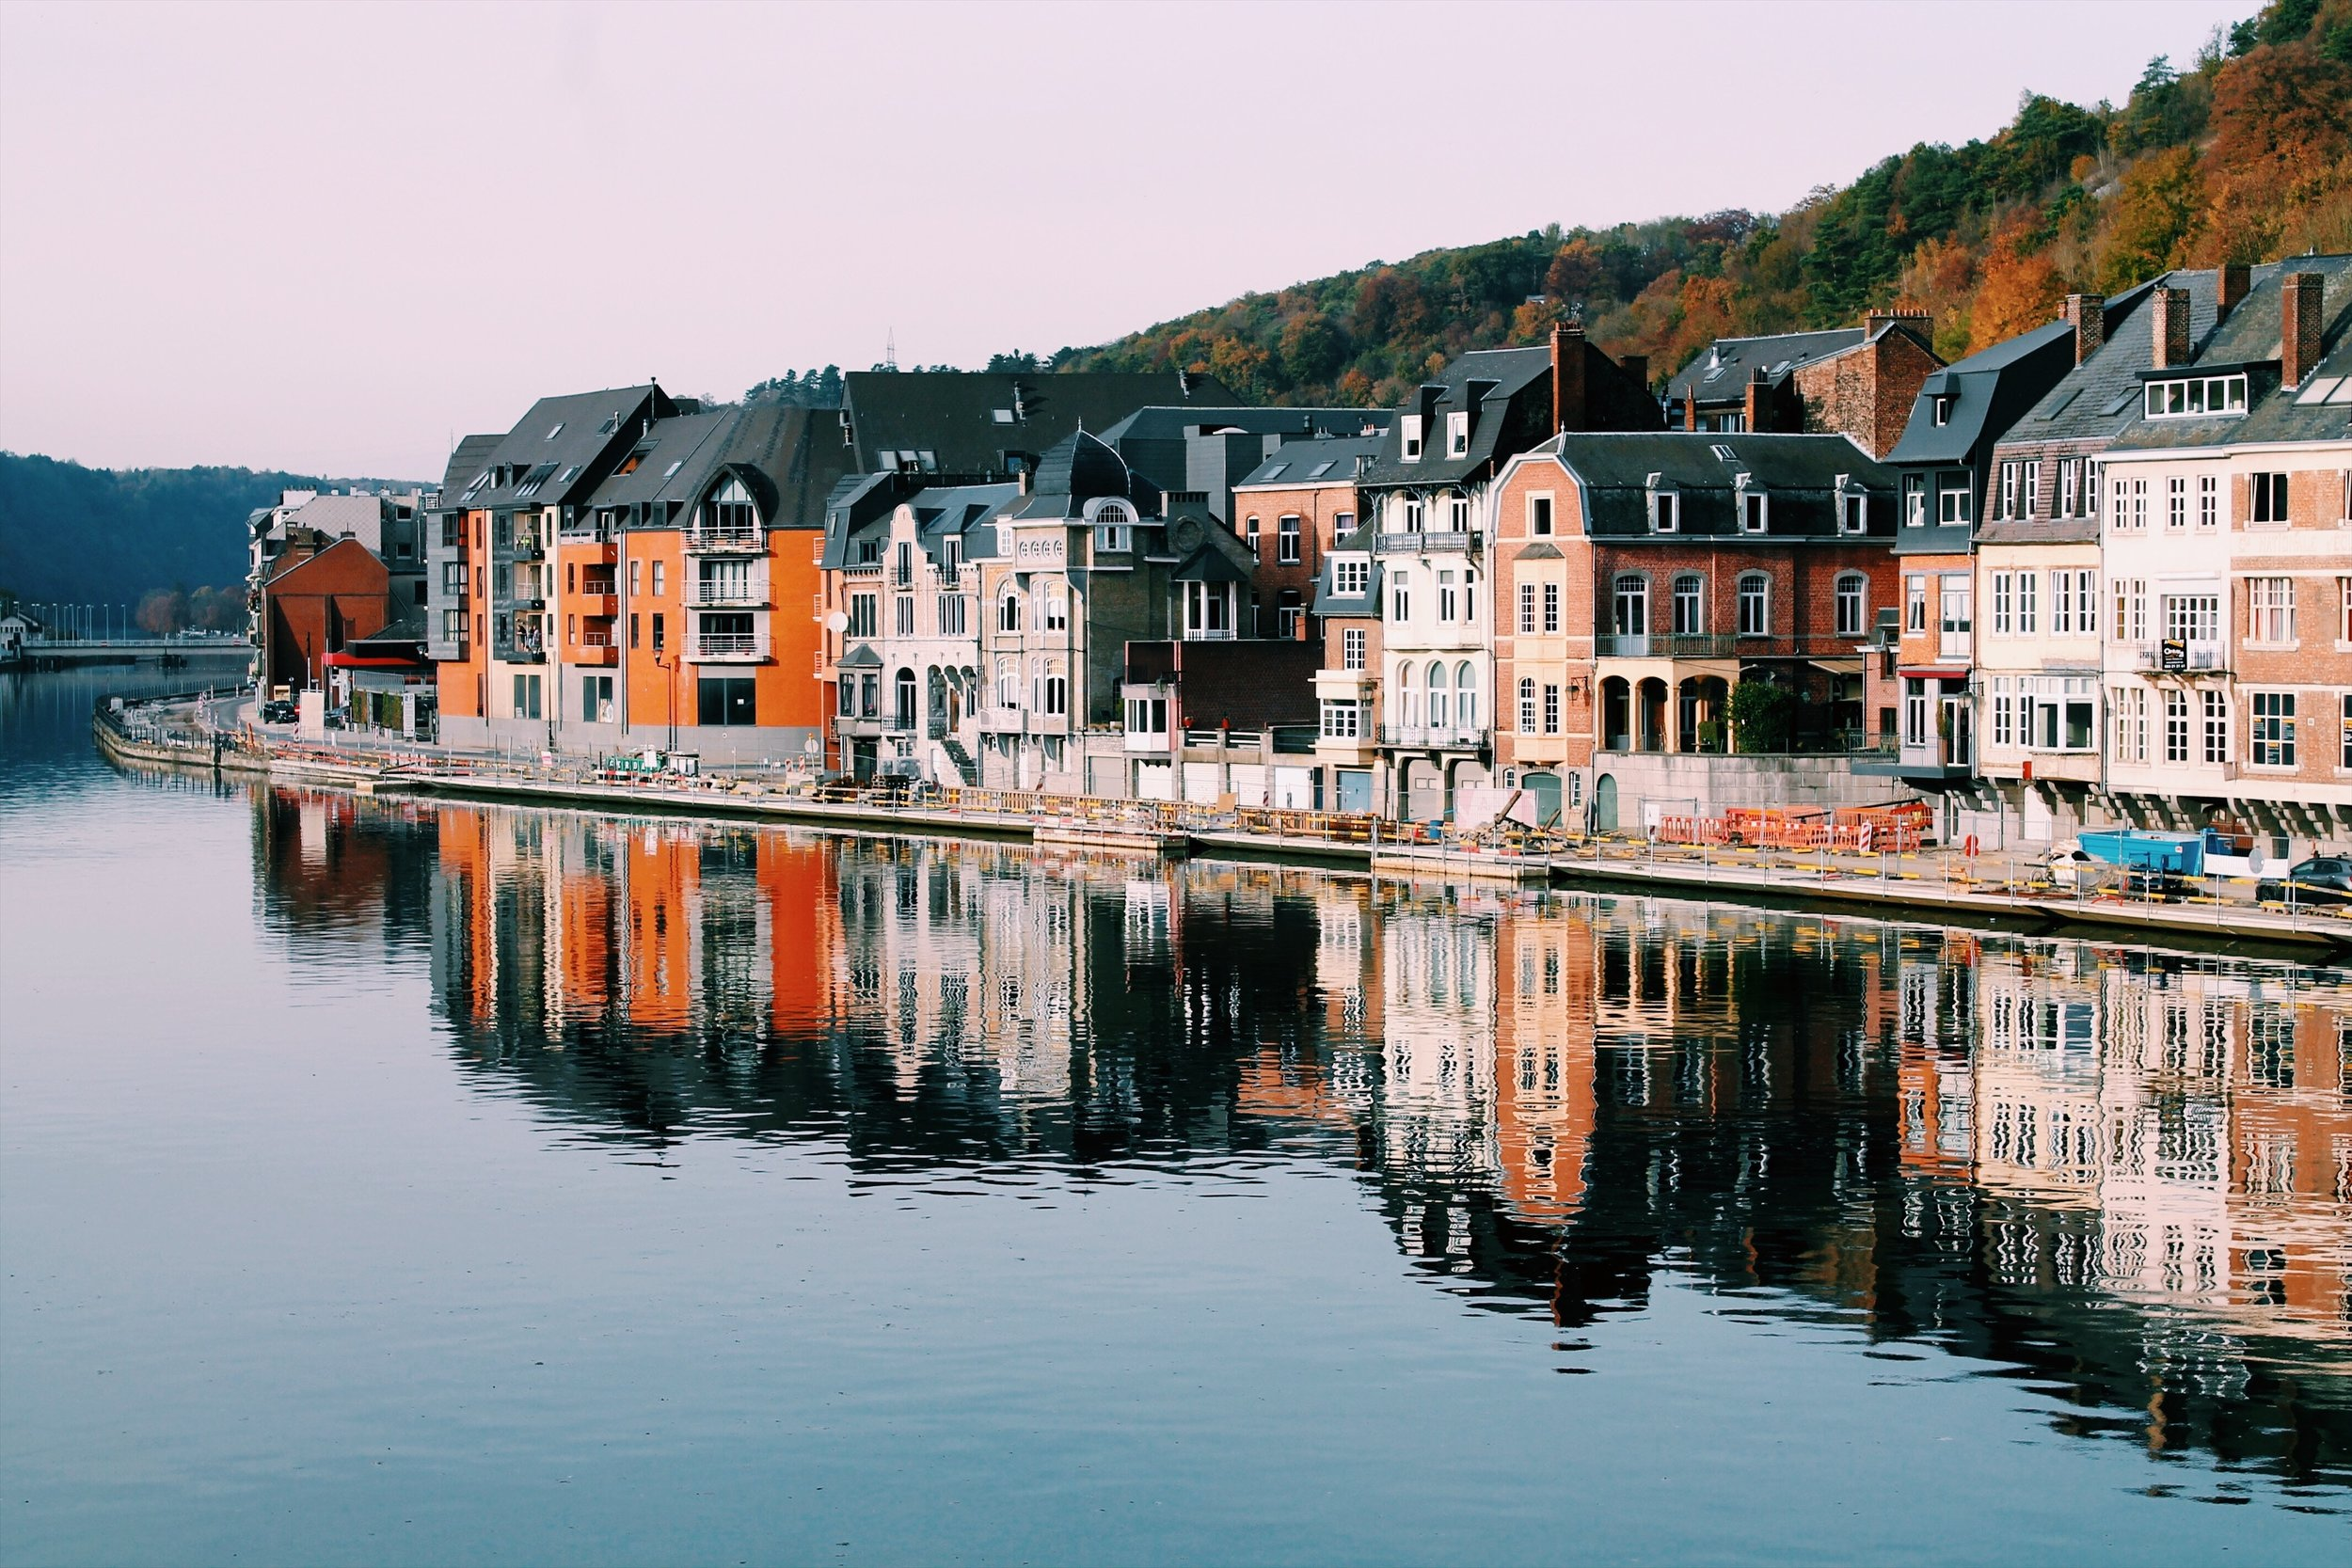 Backpacking Through Europe? Here's What You Need to Know -